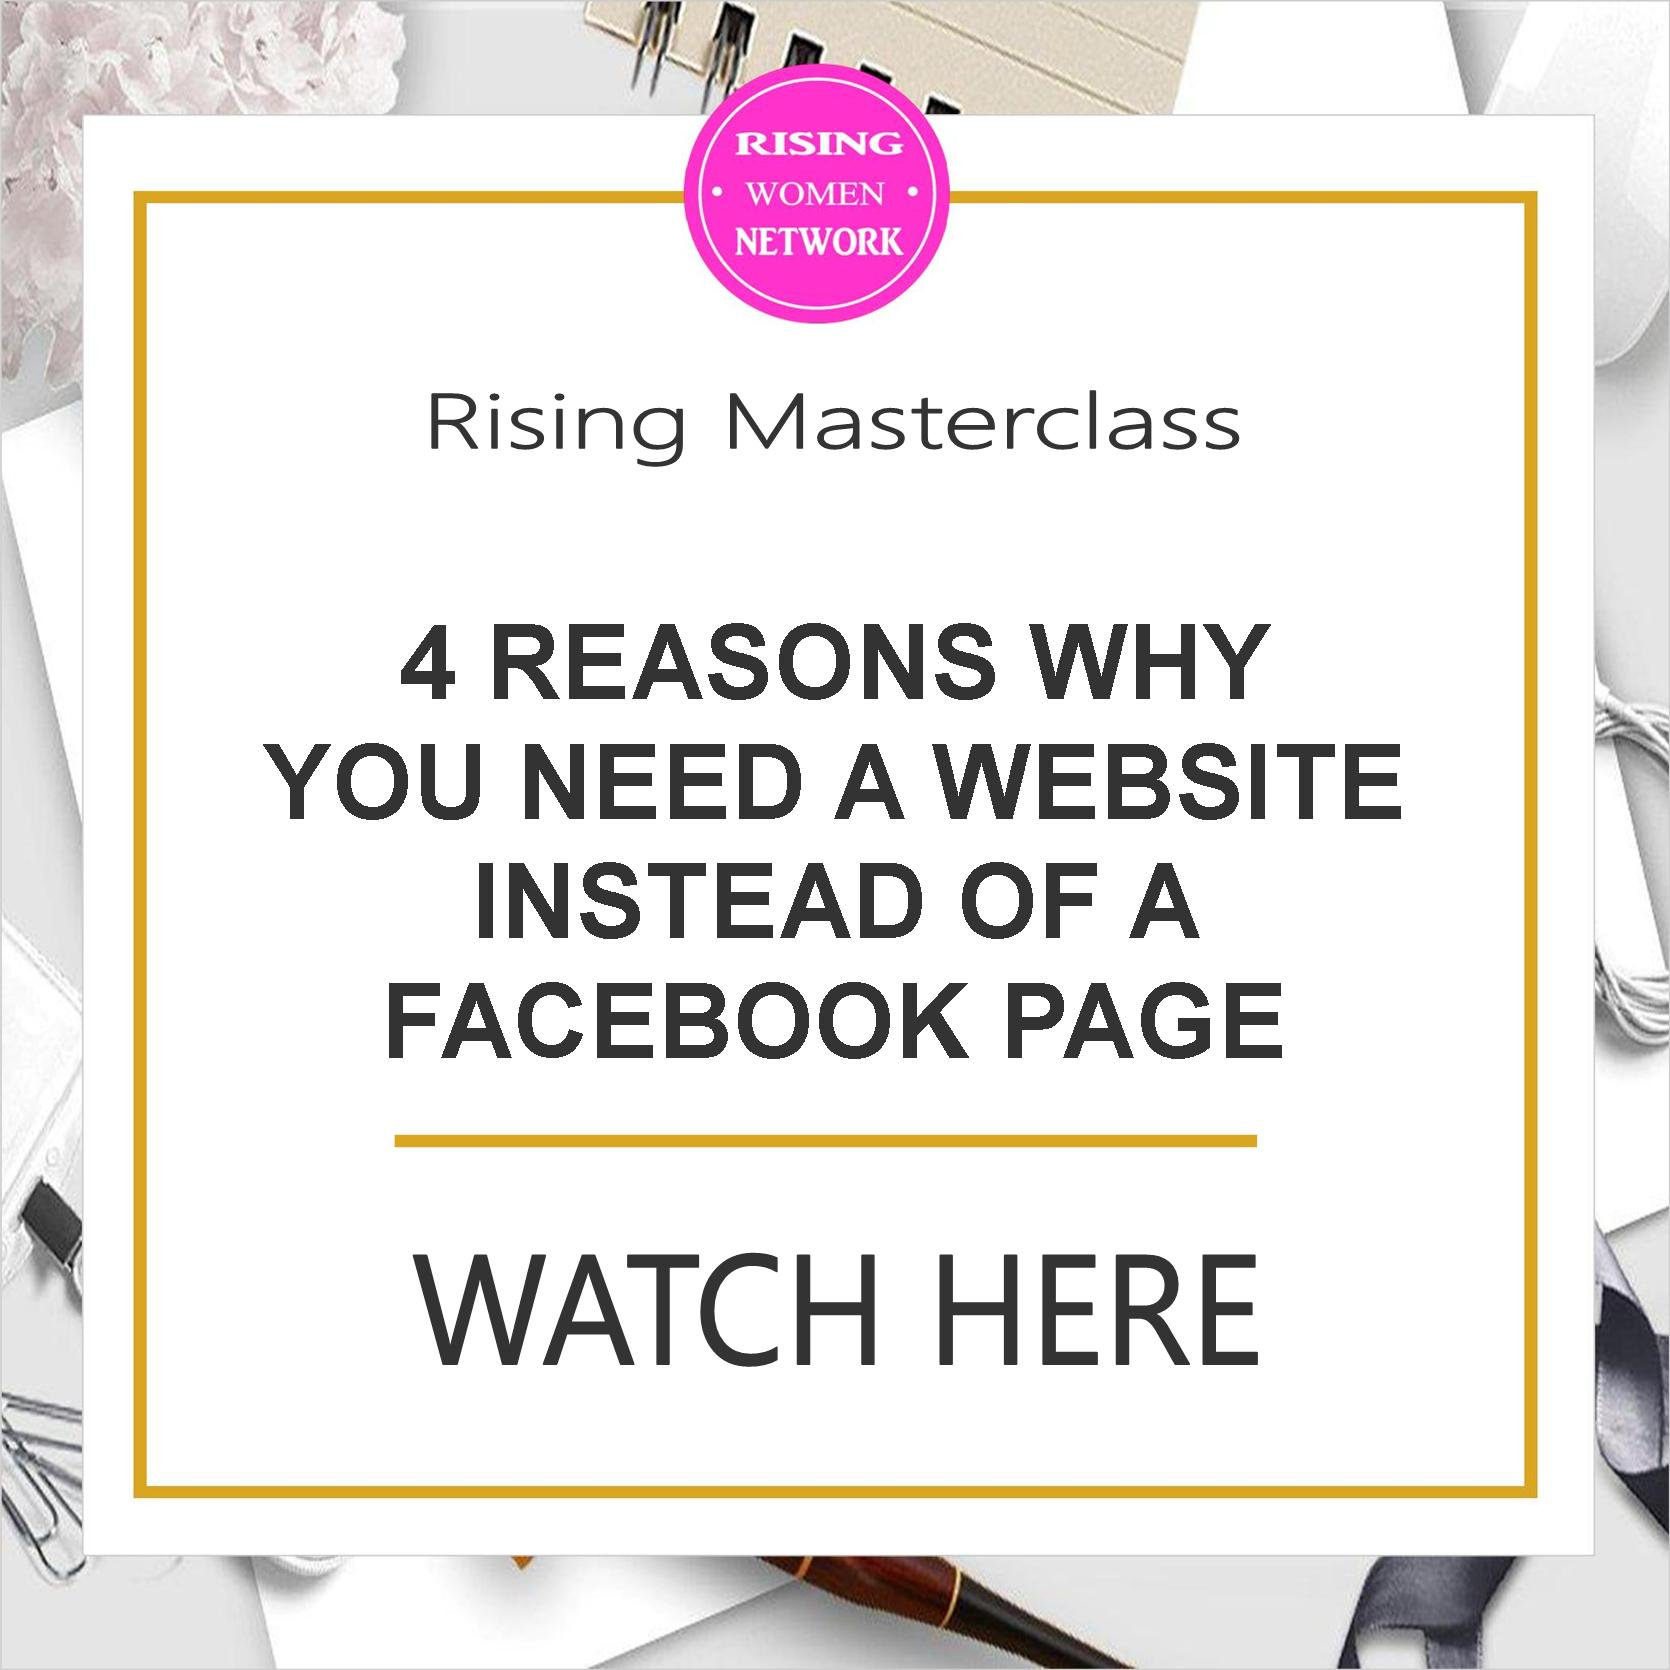 In this episode I'll give 4 important reasons why you need a website instead of simple a Facebook page for your business.